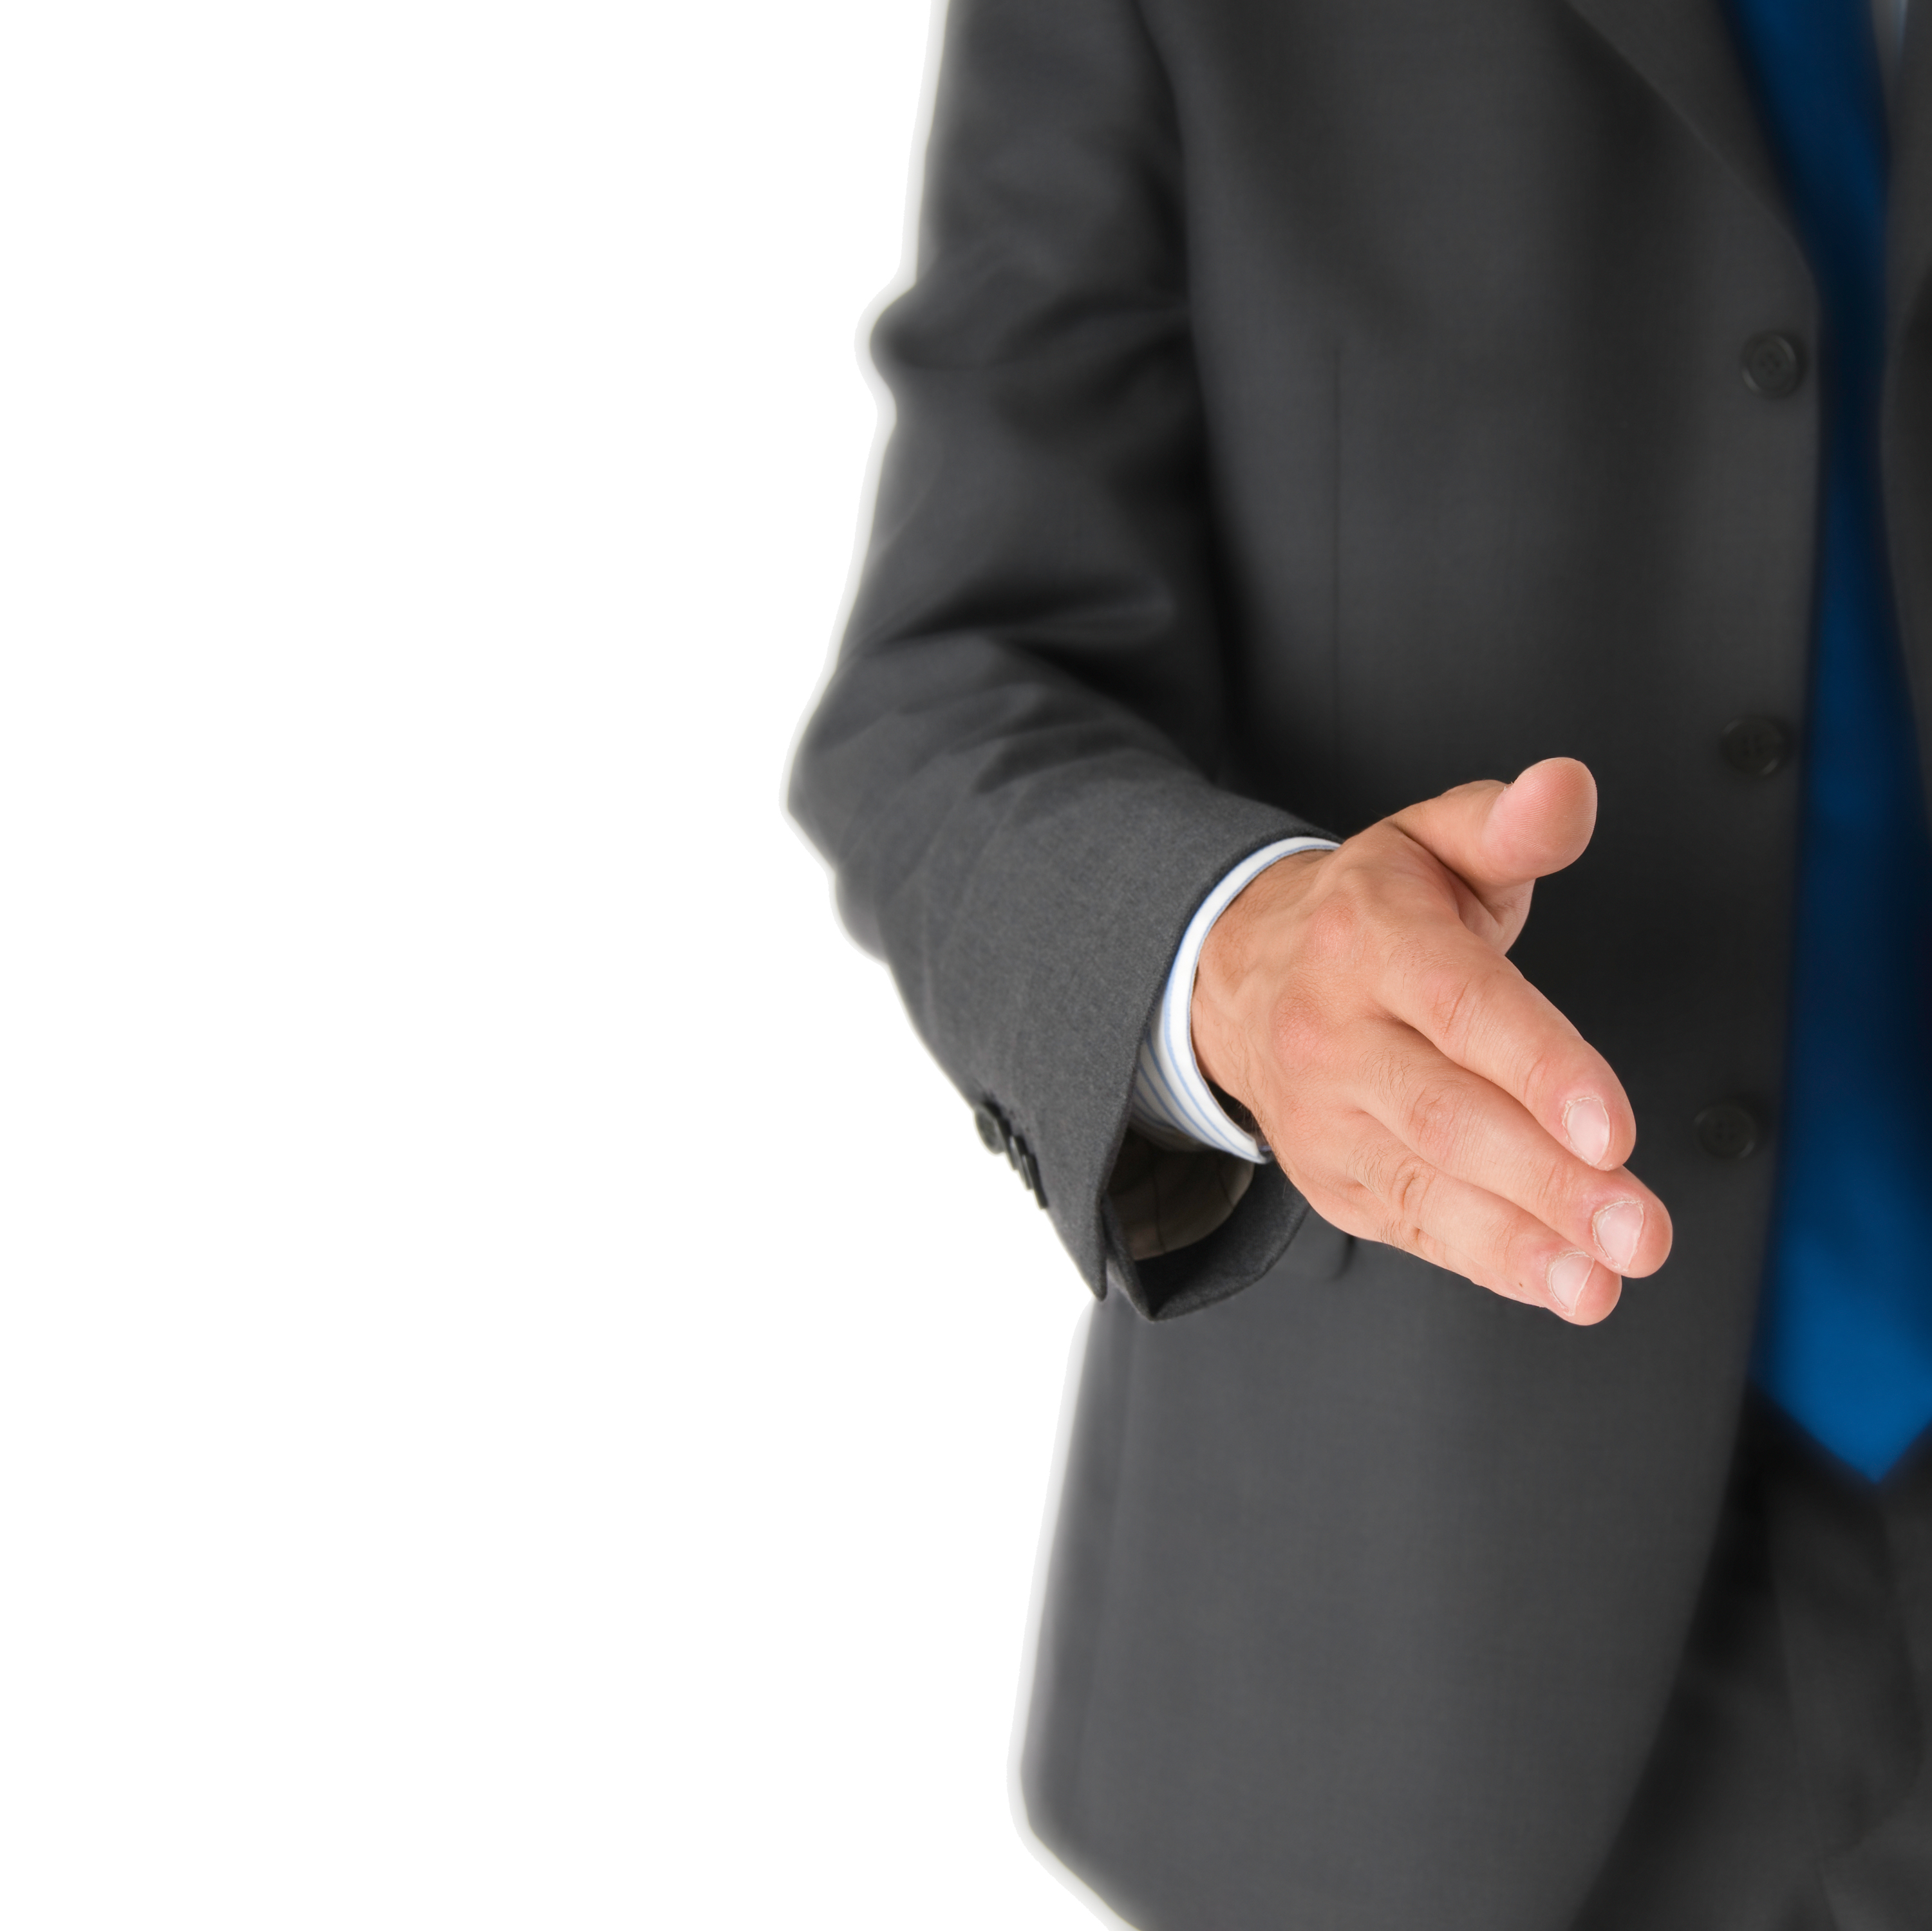 How to recruit staff: closing the offer